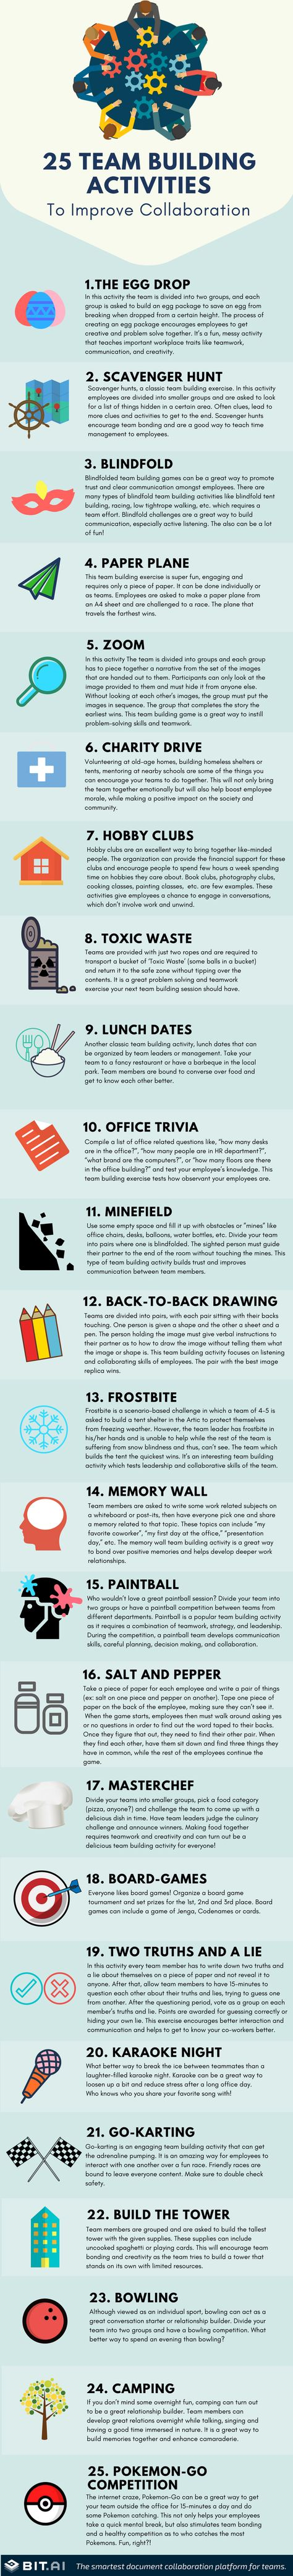 50 Best Team Building Activities For Collaboration